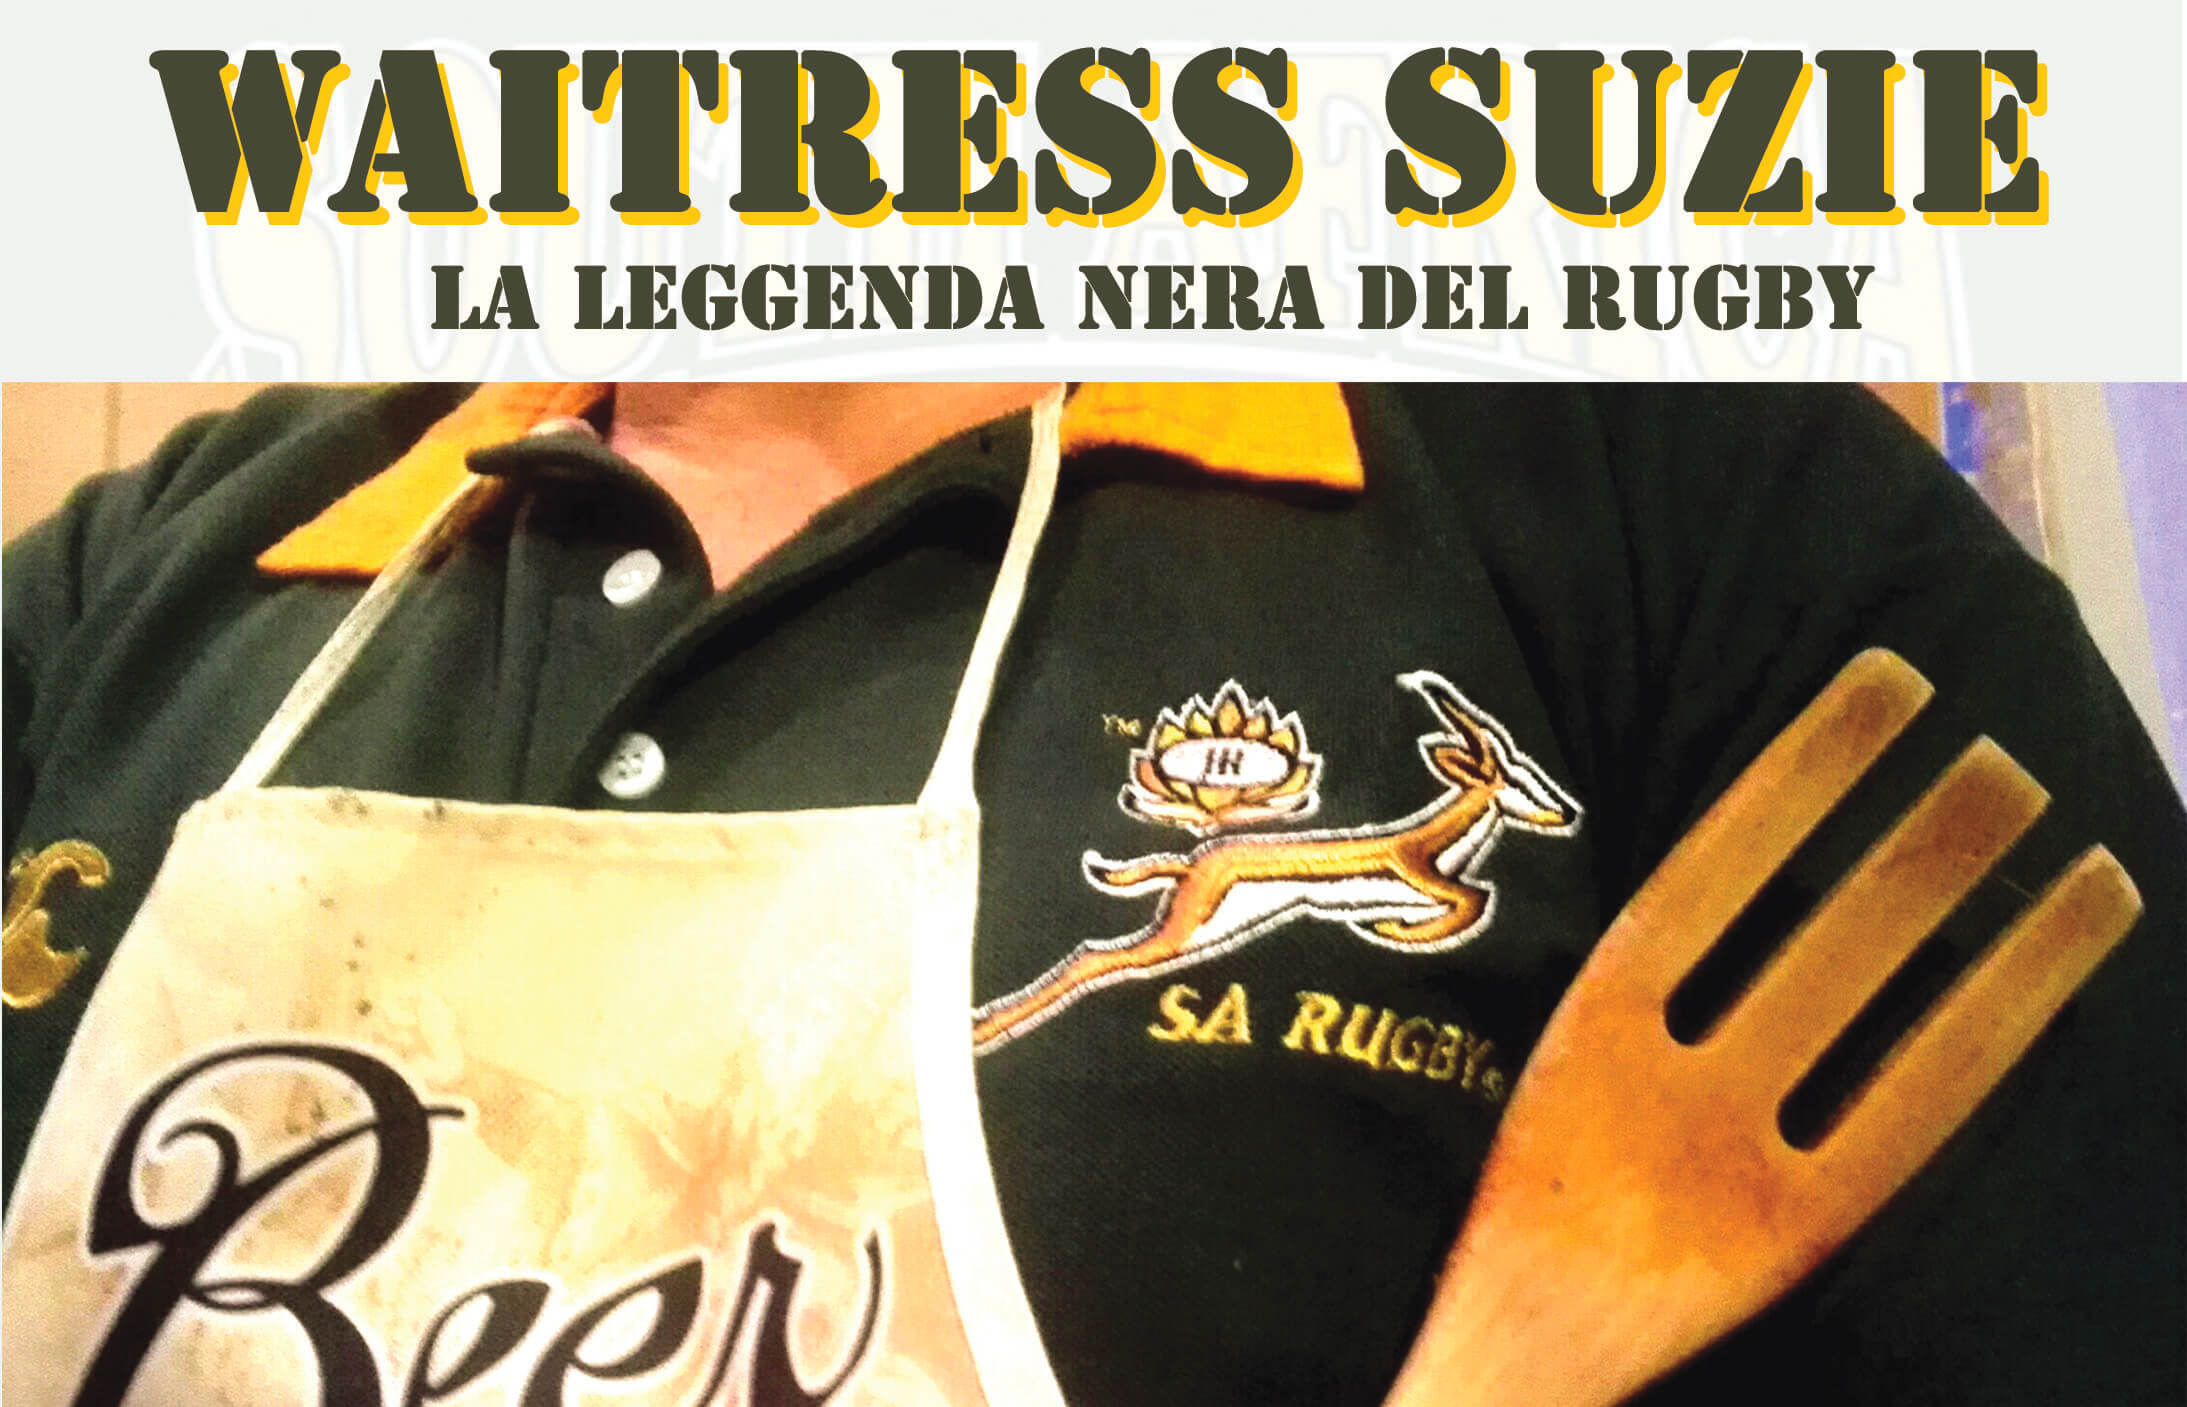 Waitress Suzie